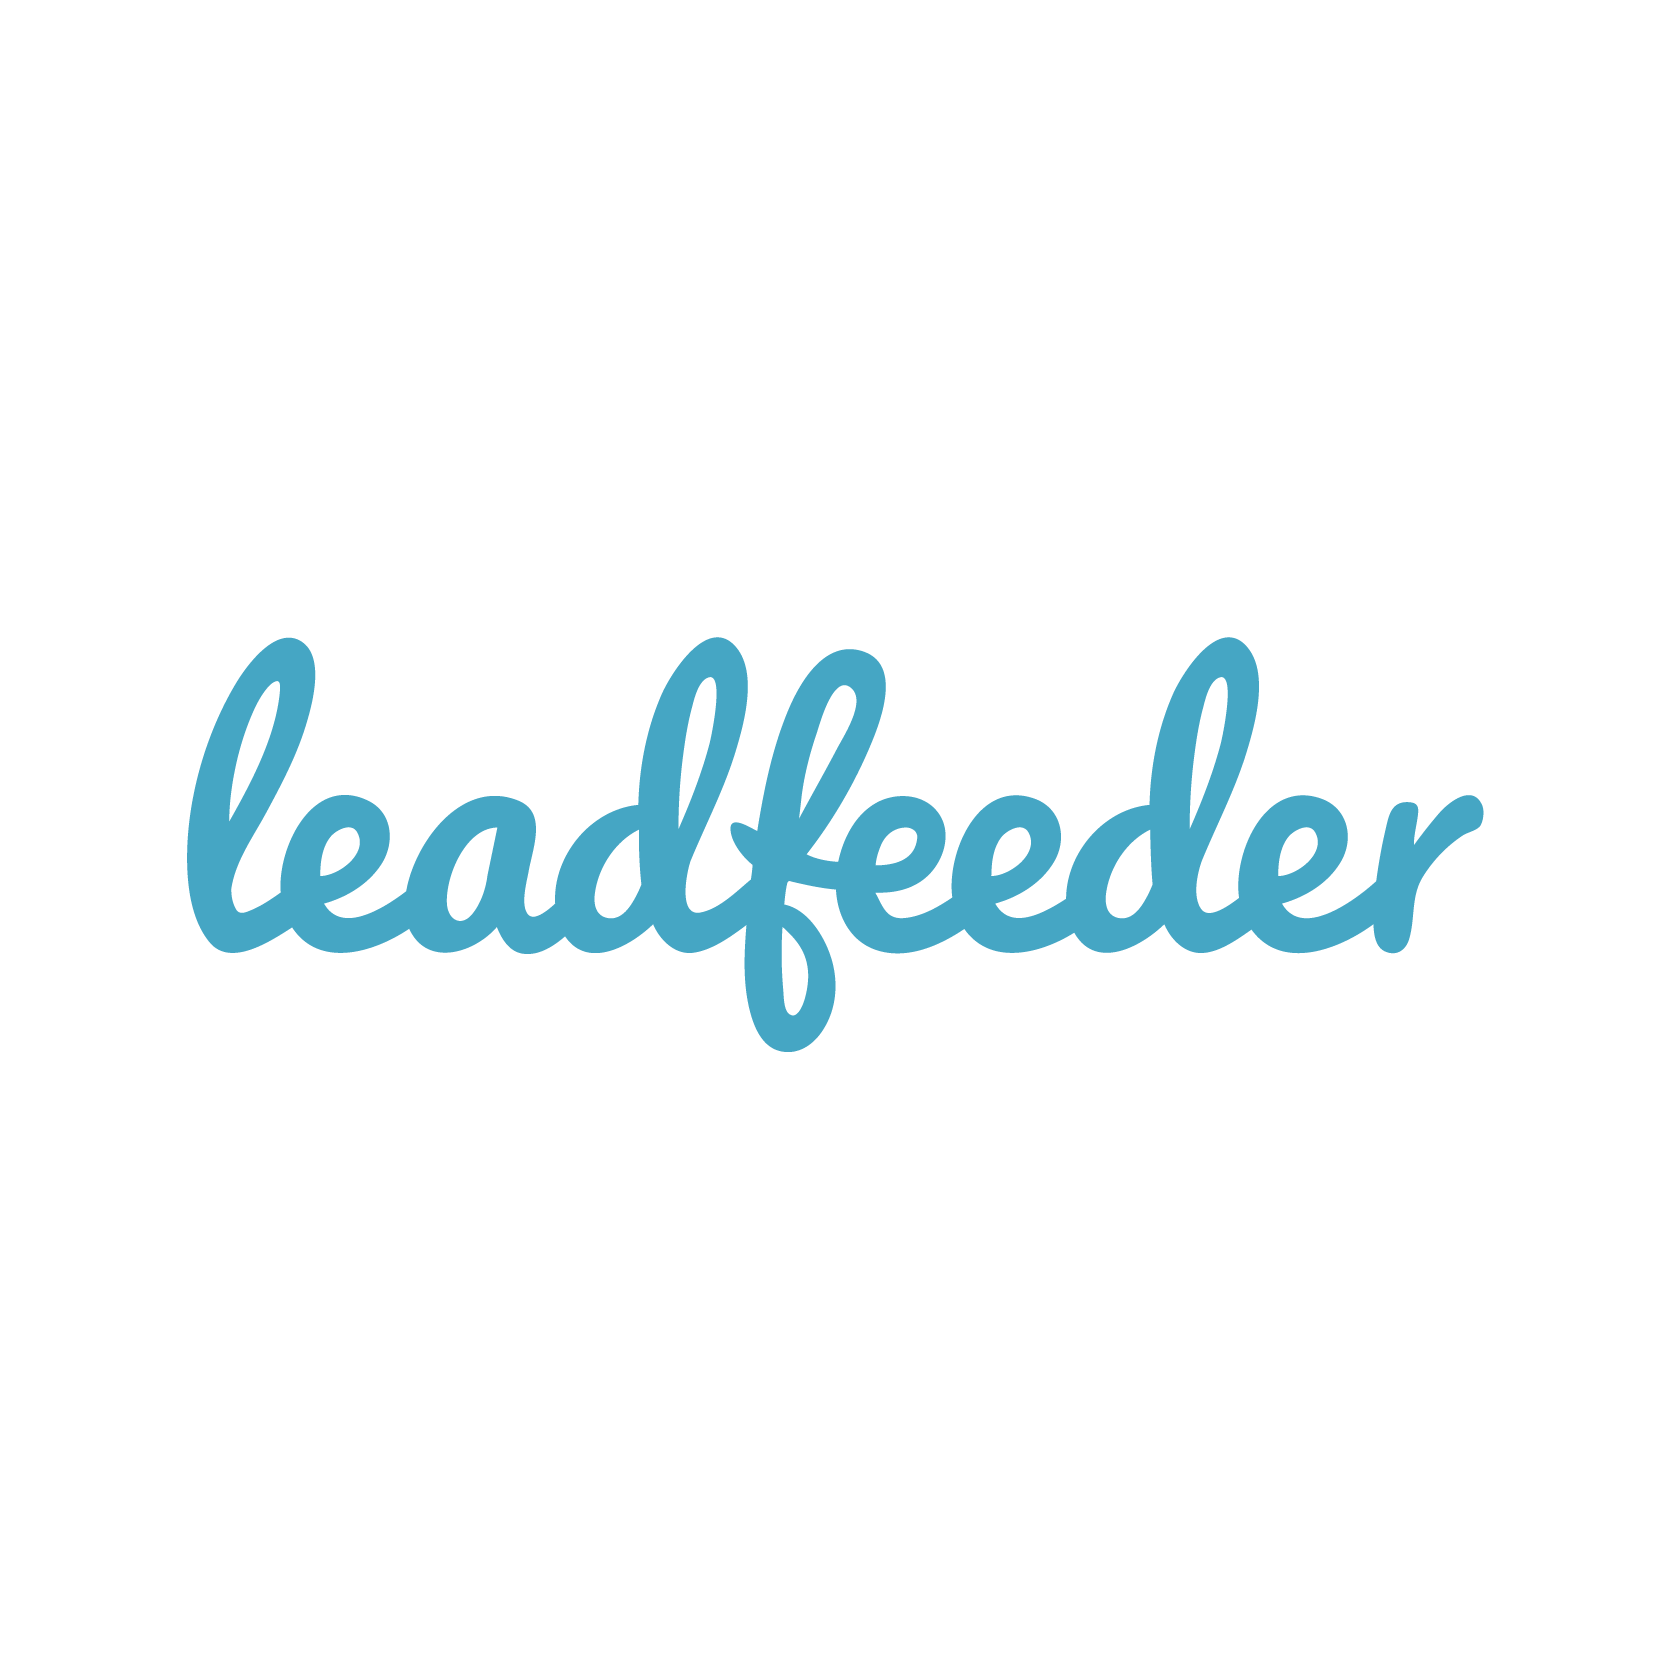 Image for product Leadfeeder in the marketplace NachoNacho